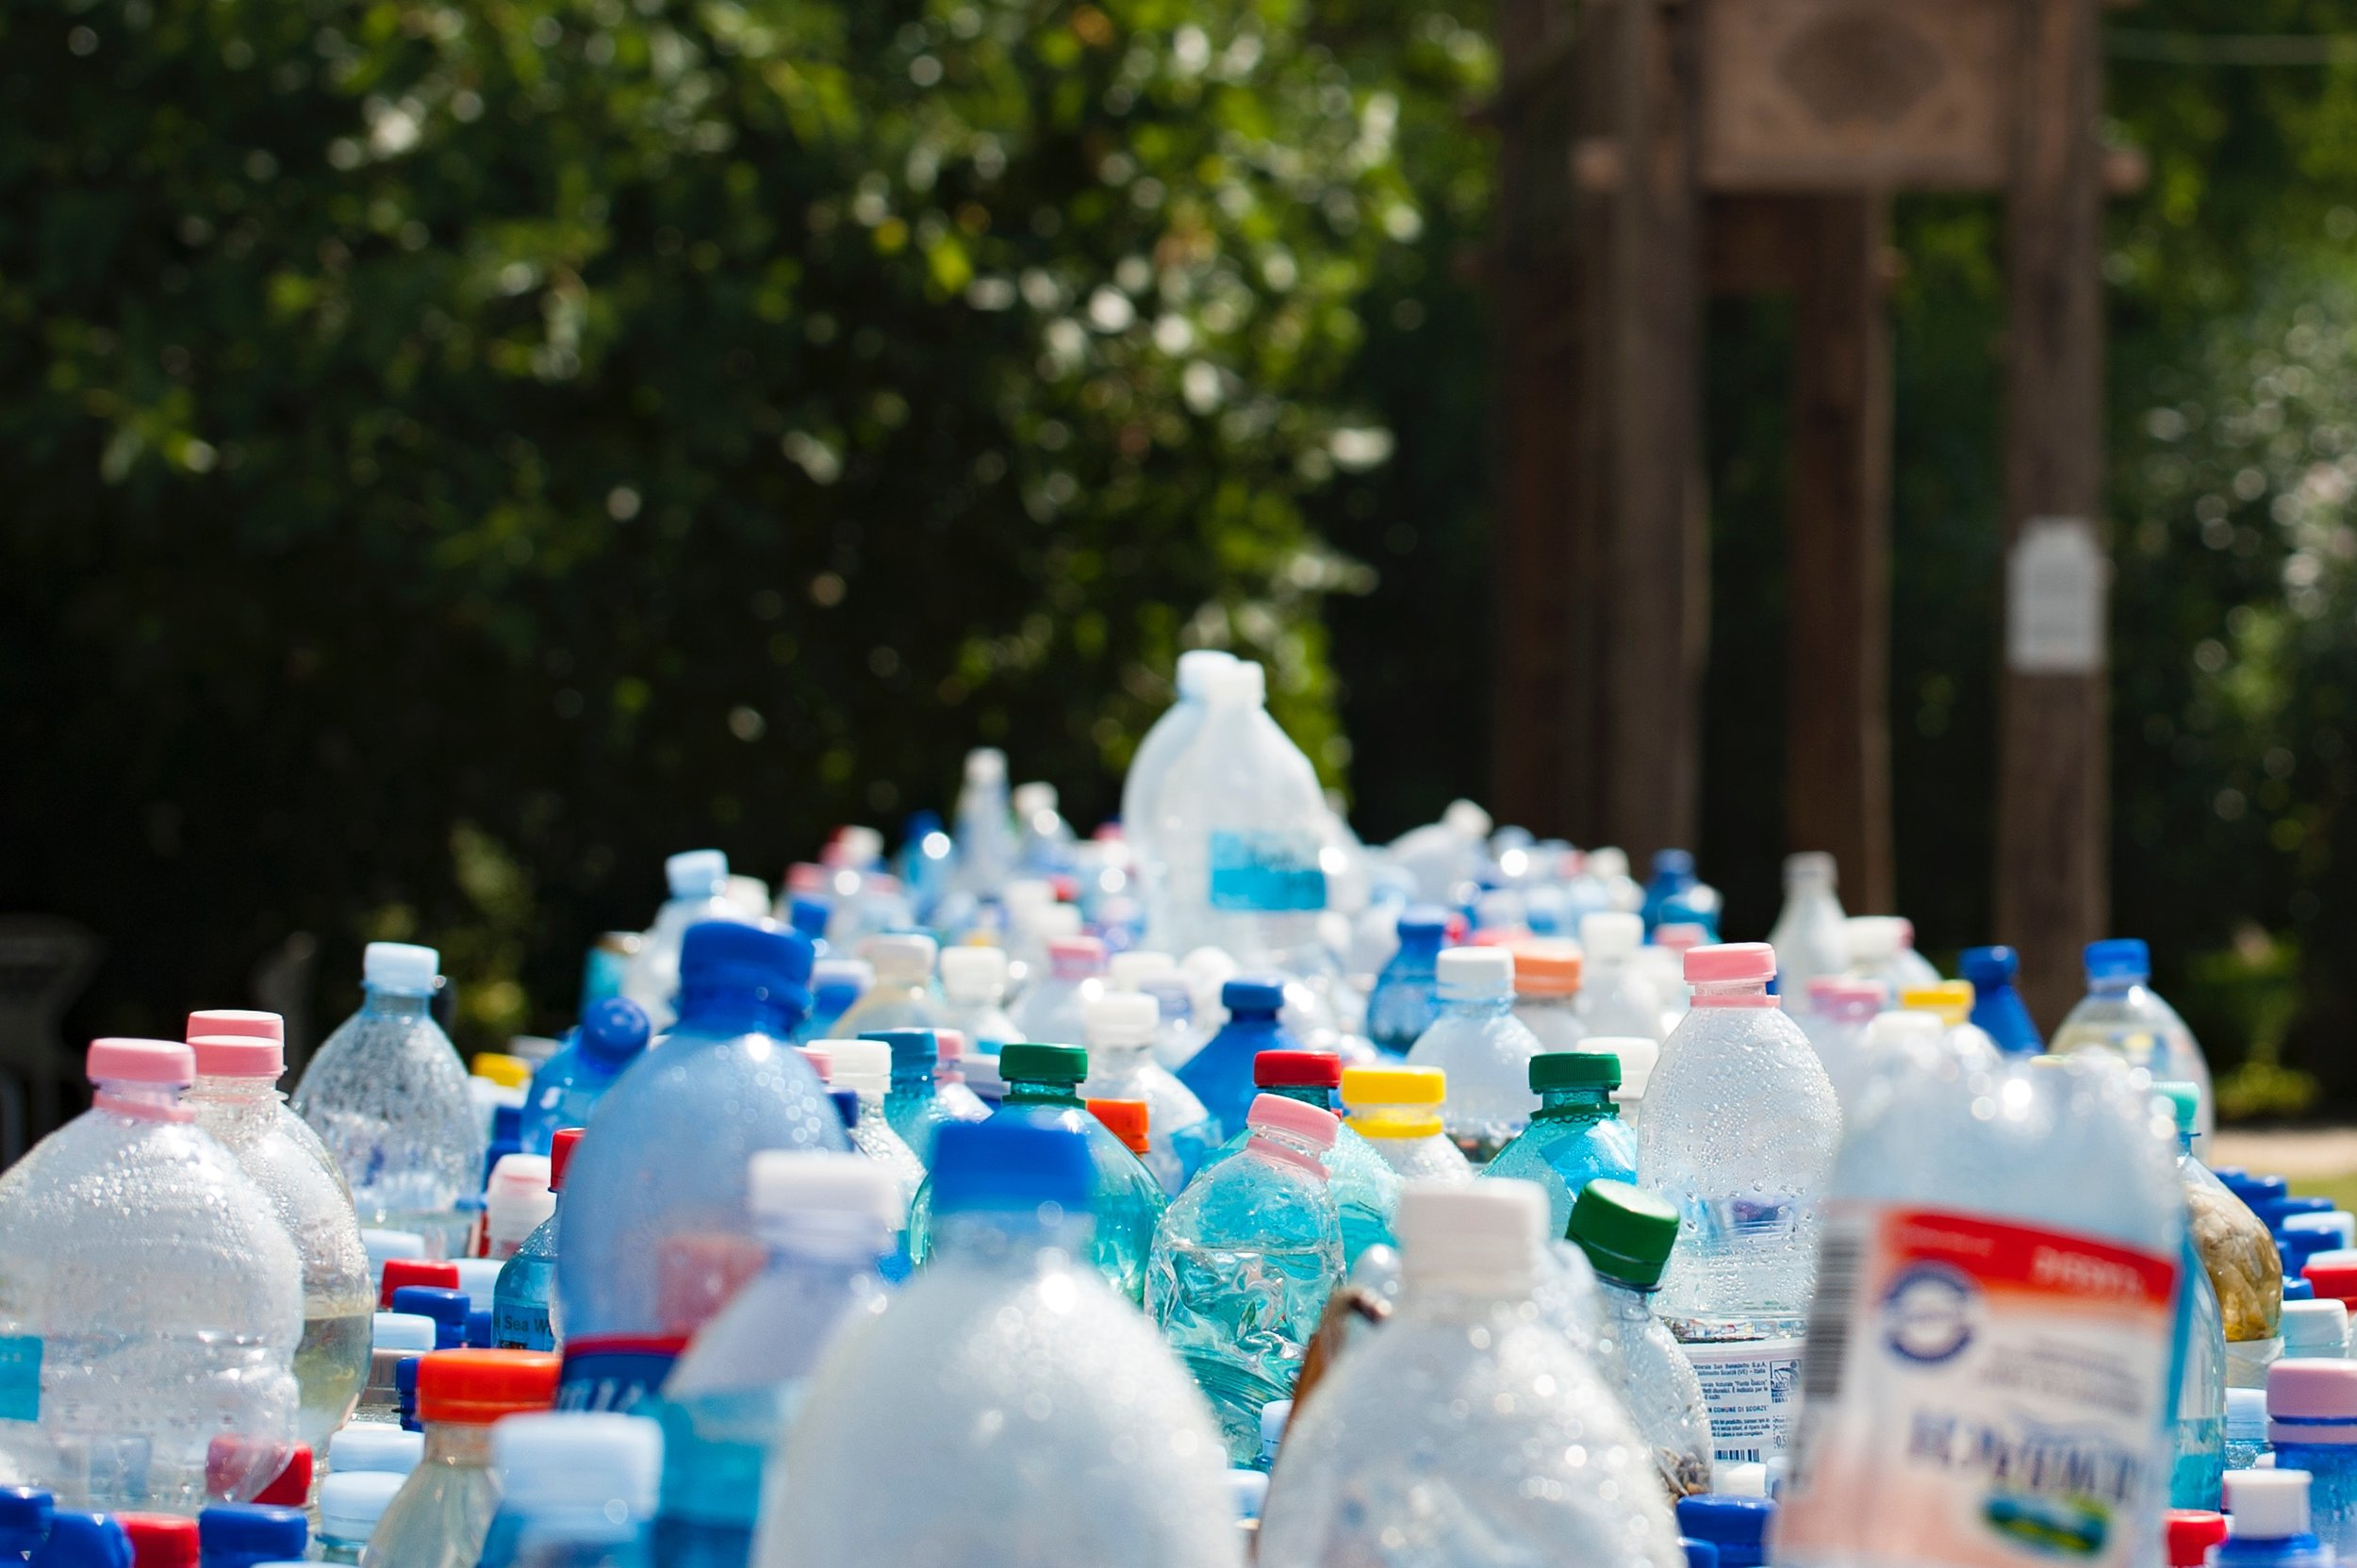 Iceland collects more than 300,000 plastic bottles in reverse vending trial -